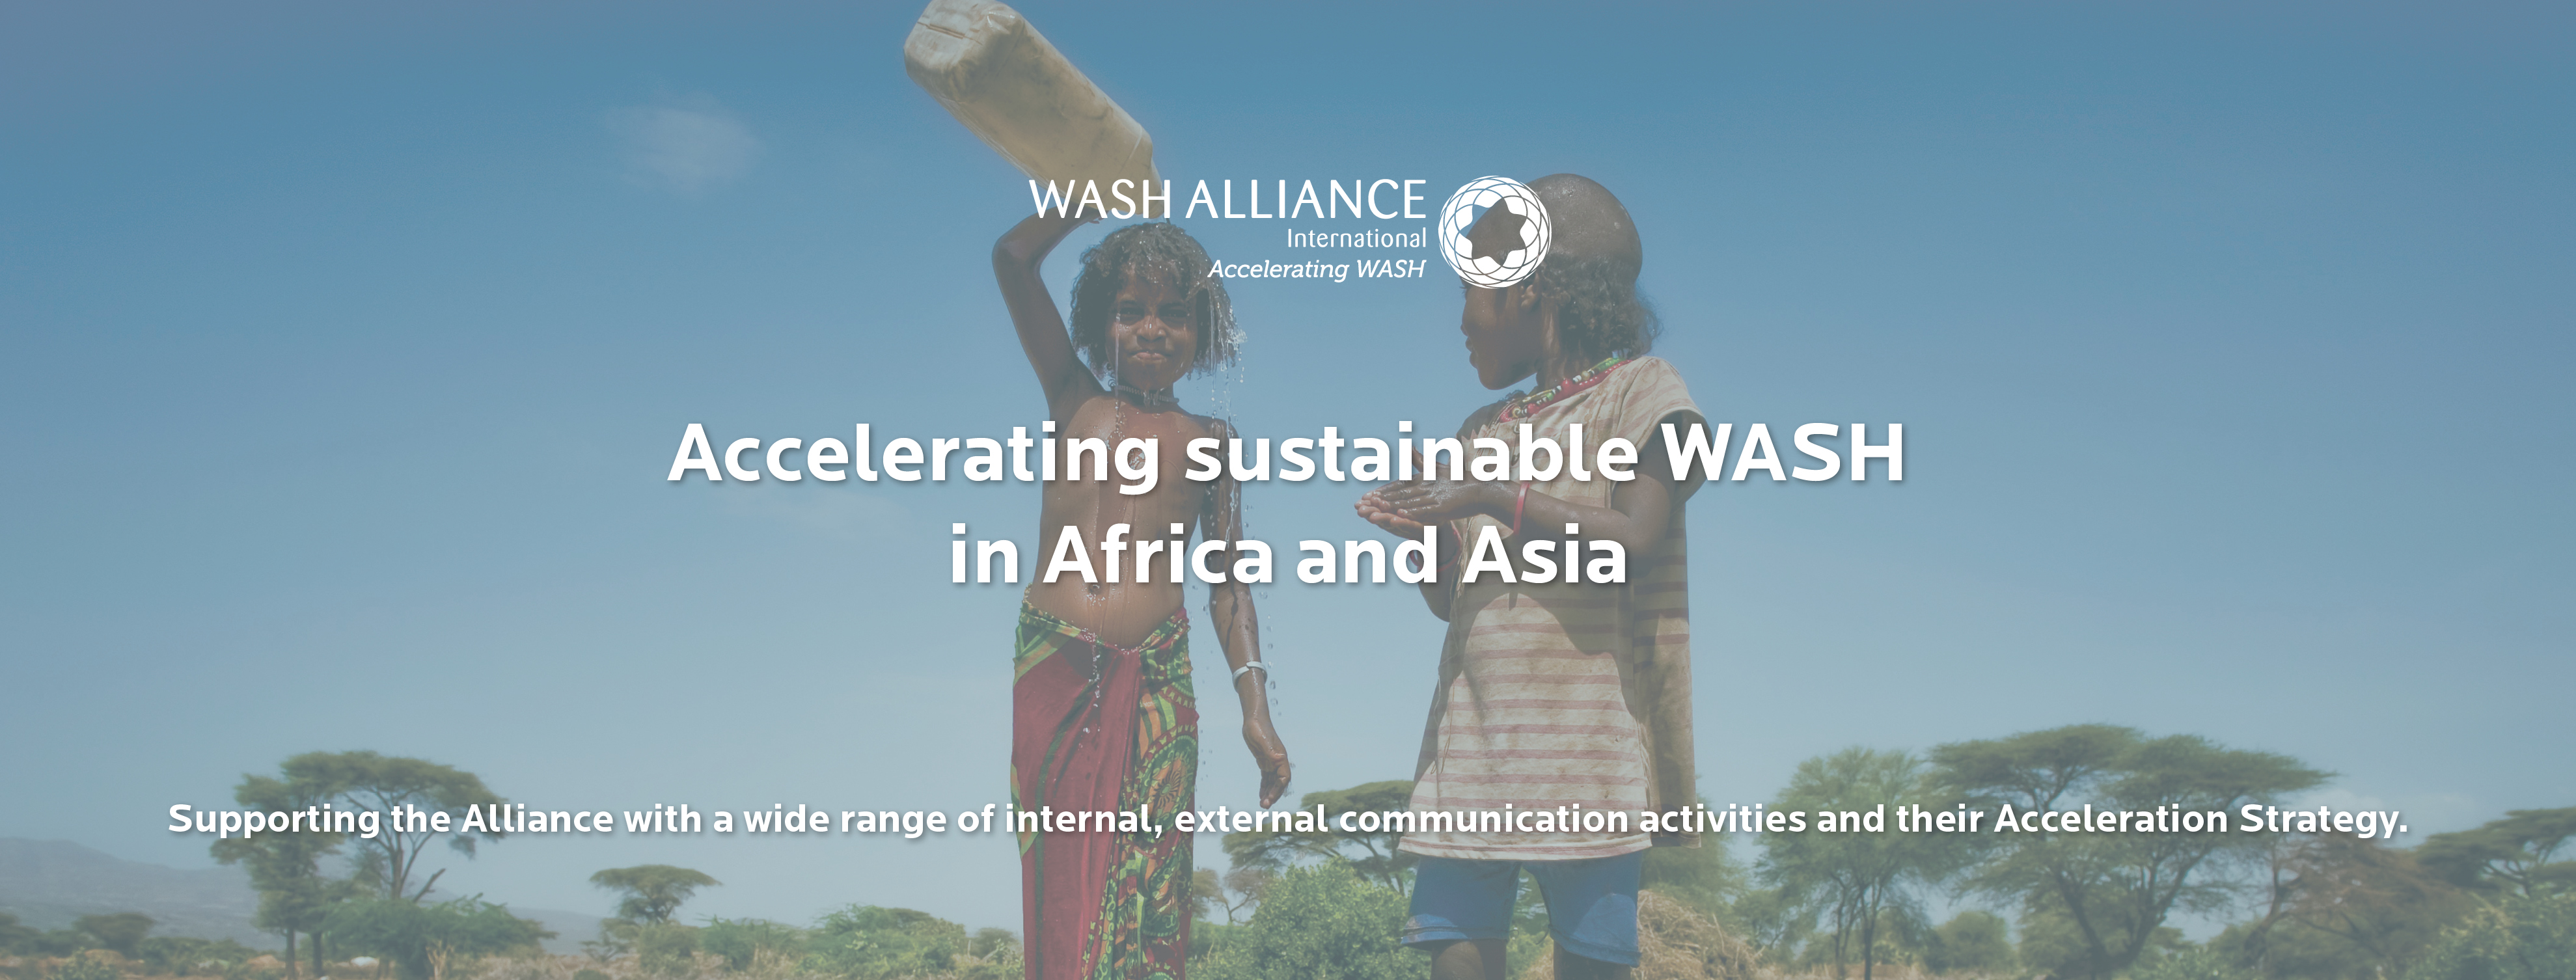 Communication activities and accelerating sustainable WASH services